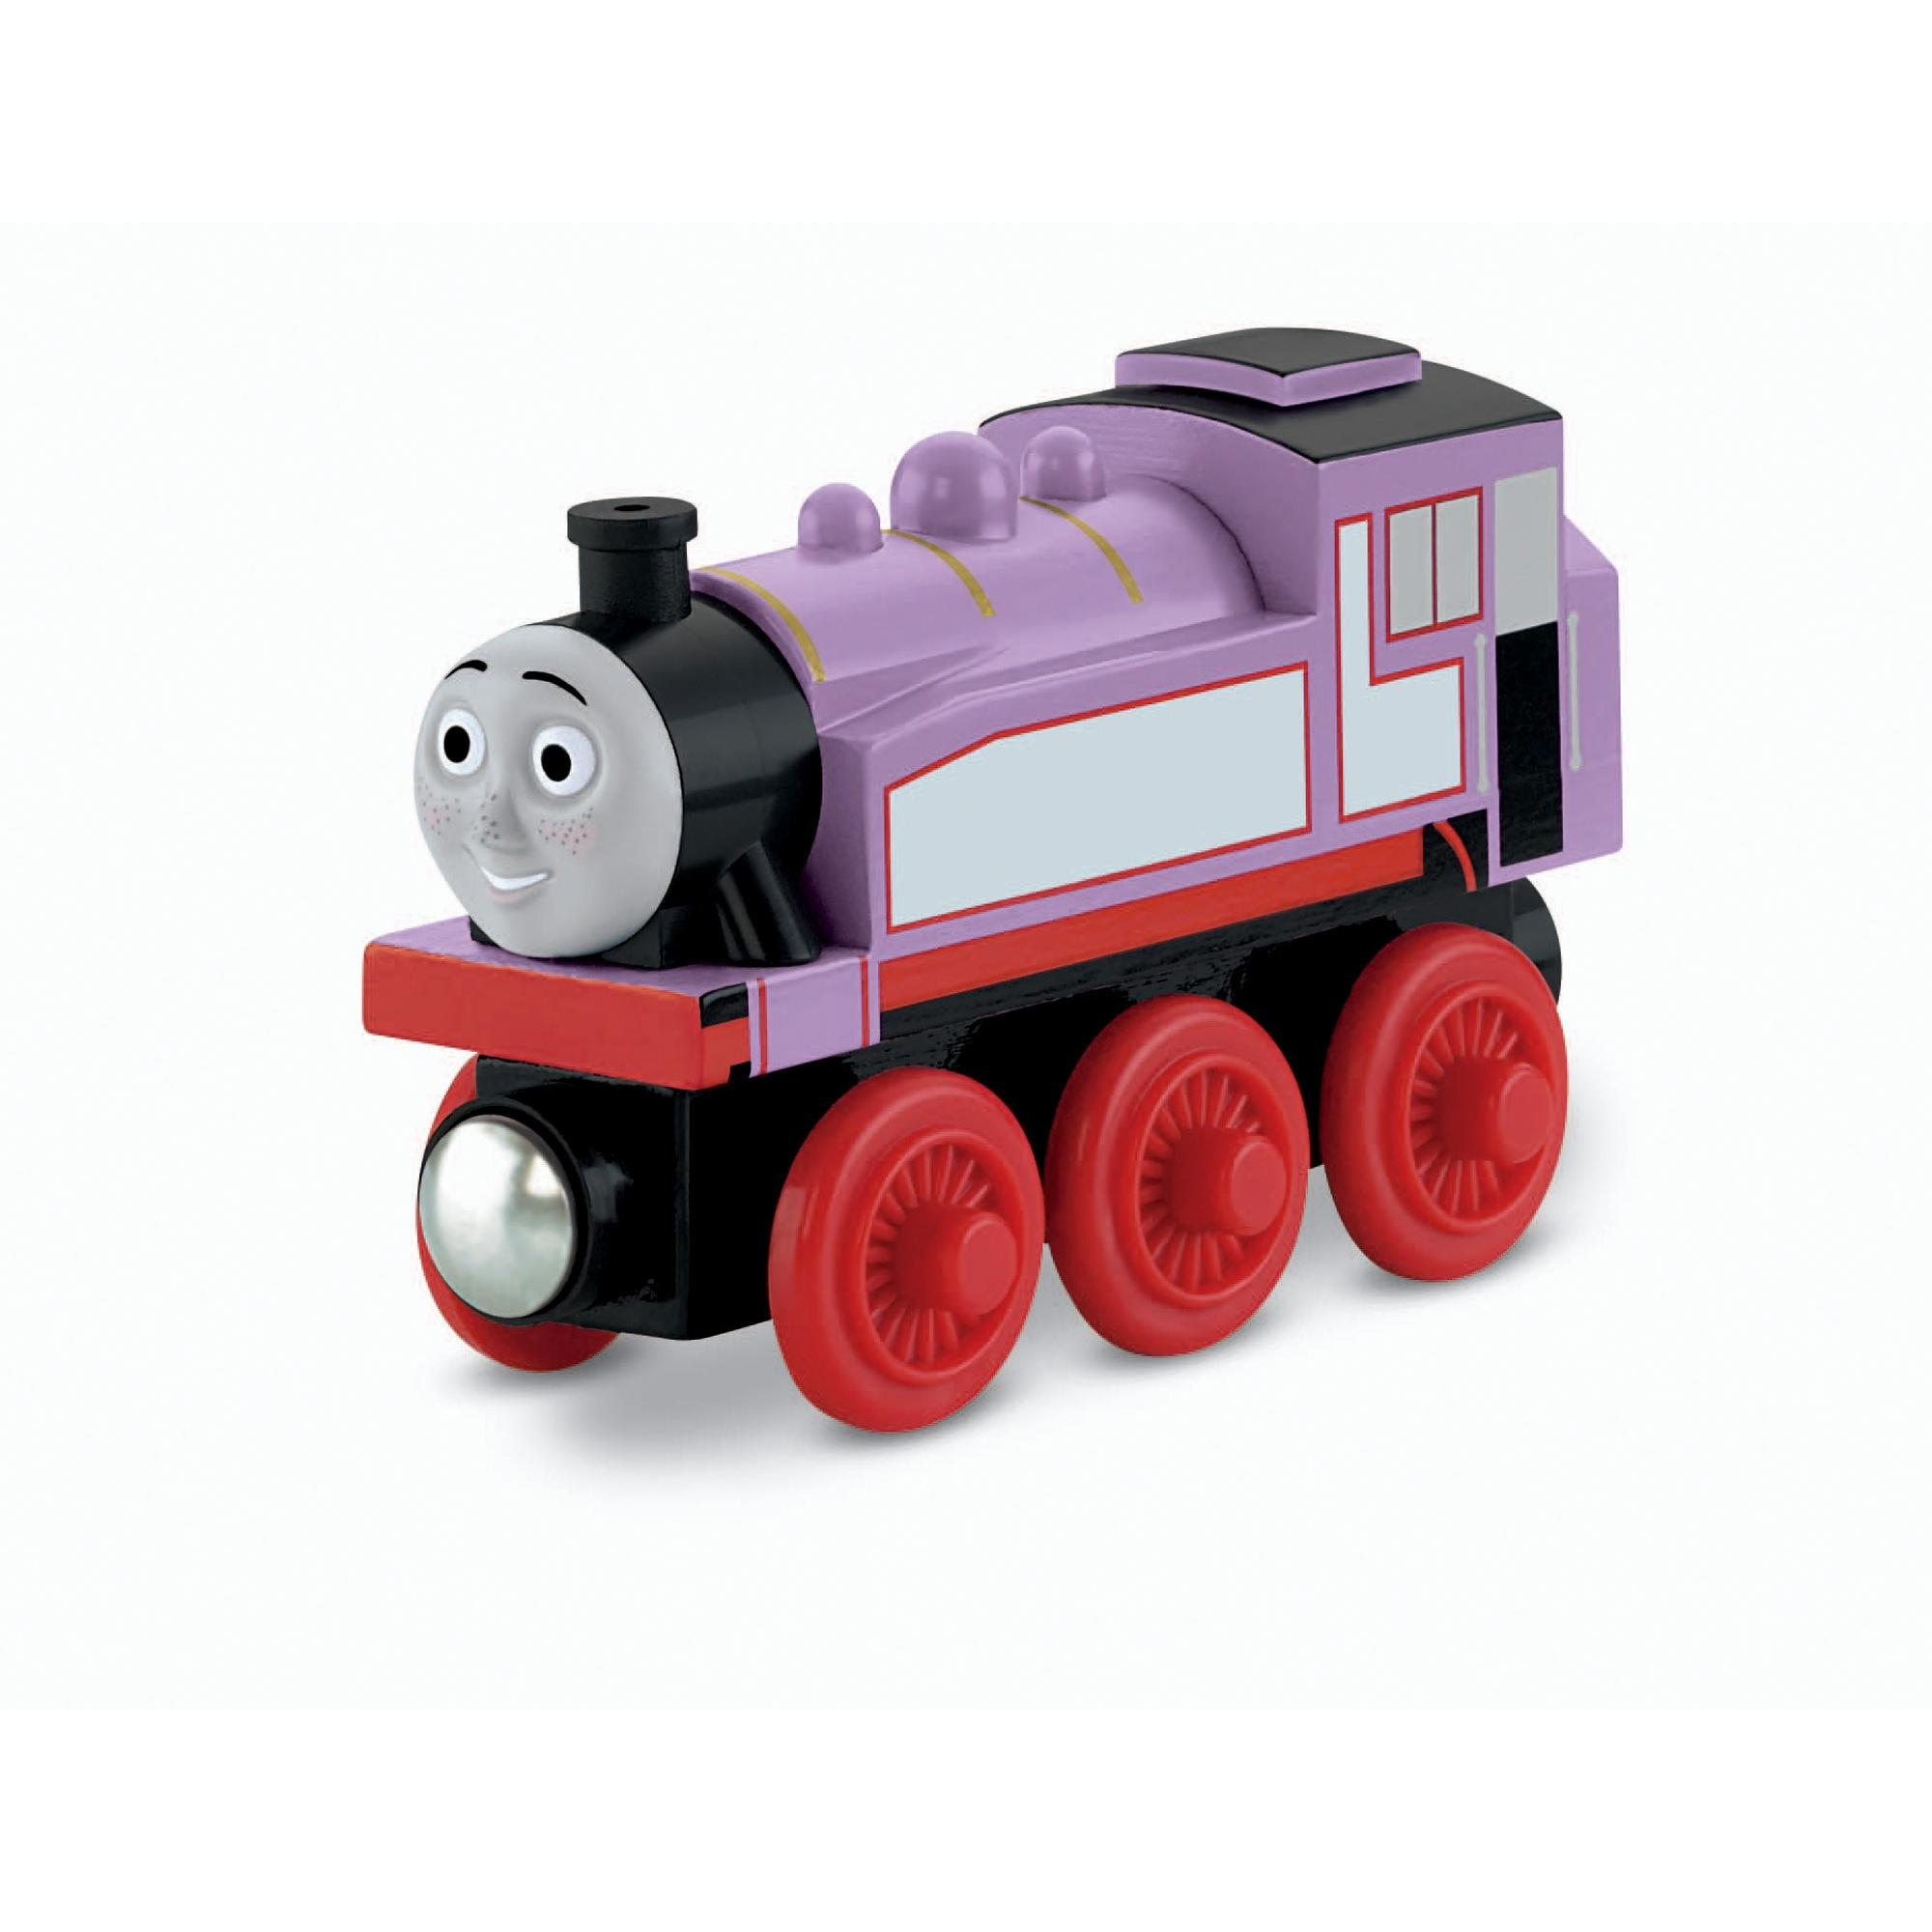 Fisher Price Thomas the Train Wooden Railway Rosie by FISHER PRICE